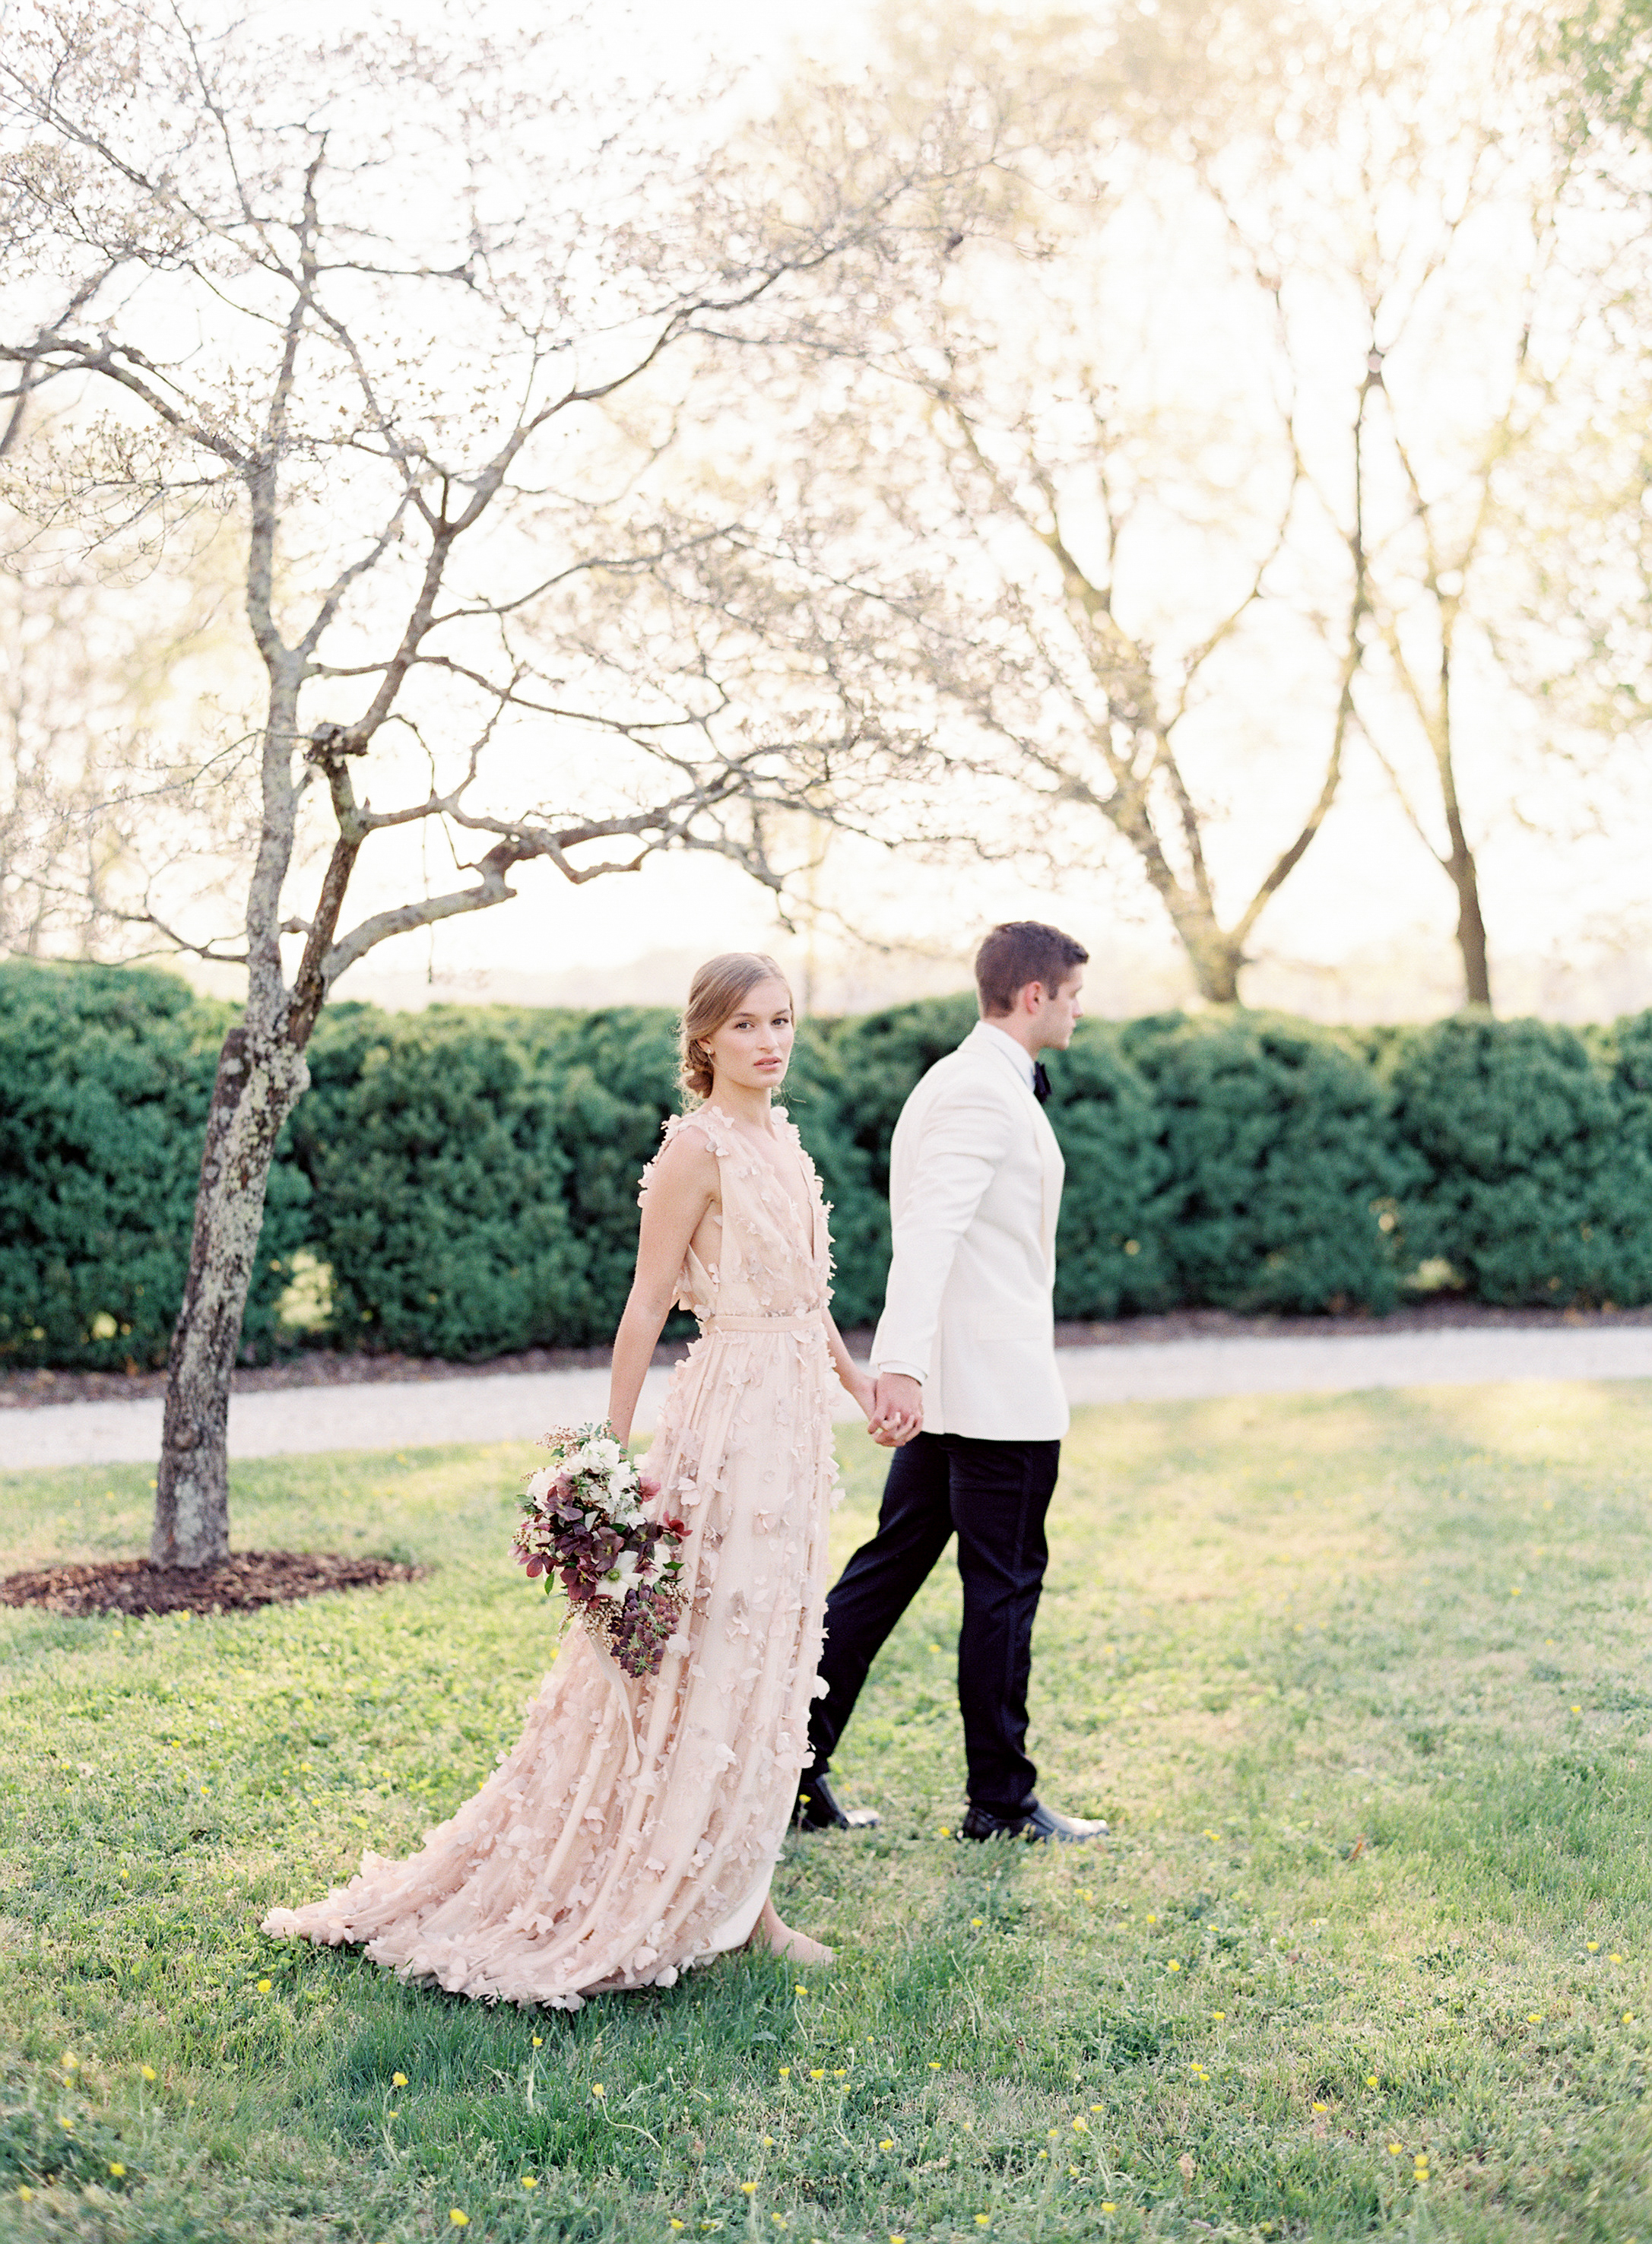 Virginia blush spring wedding at North Point Plantation with Rachel May Photography and East Made Event Company featured on OnceWed-0275.jpg